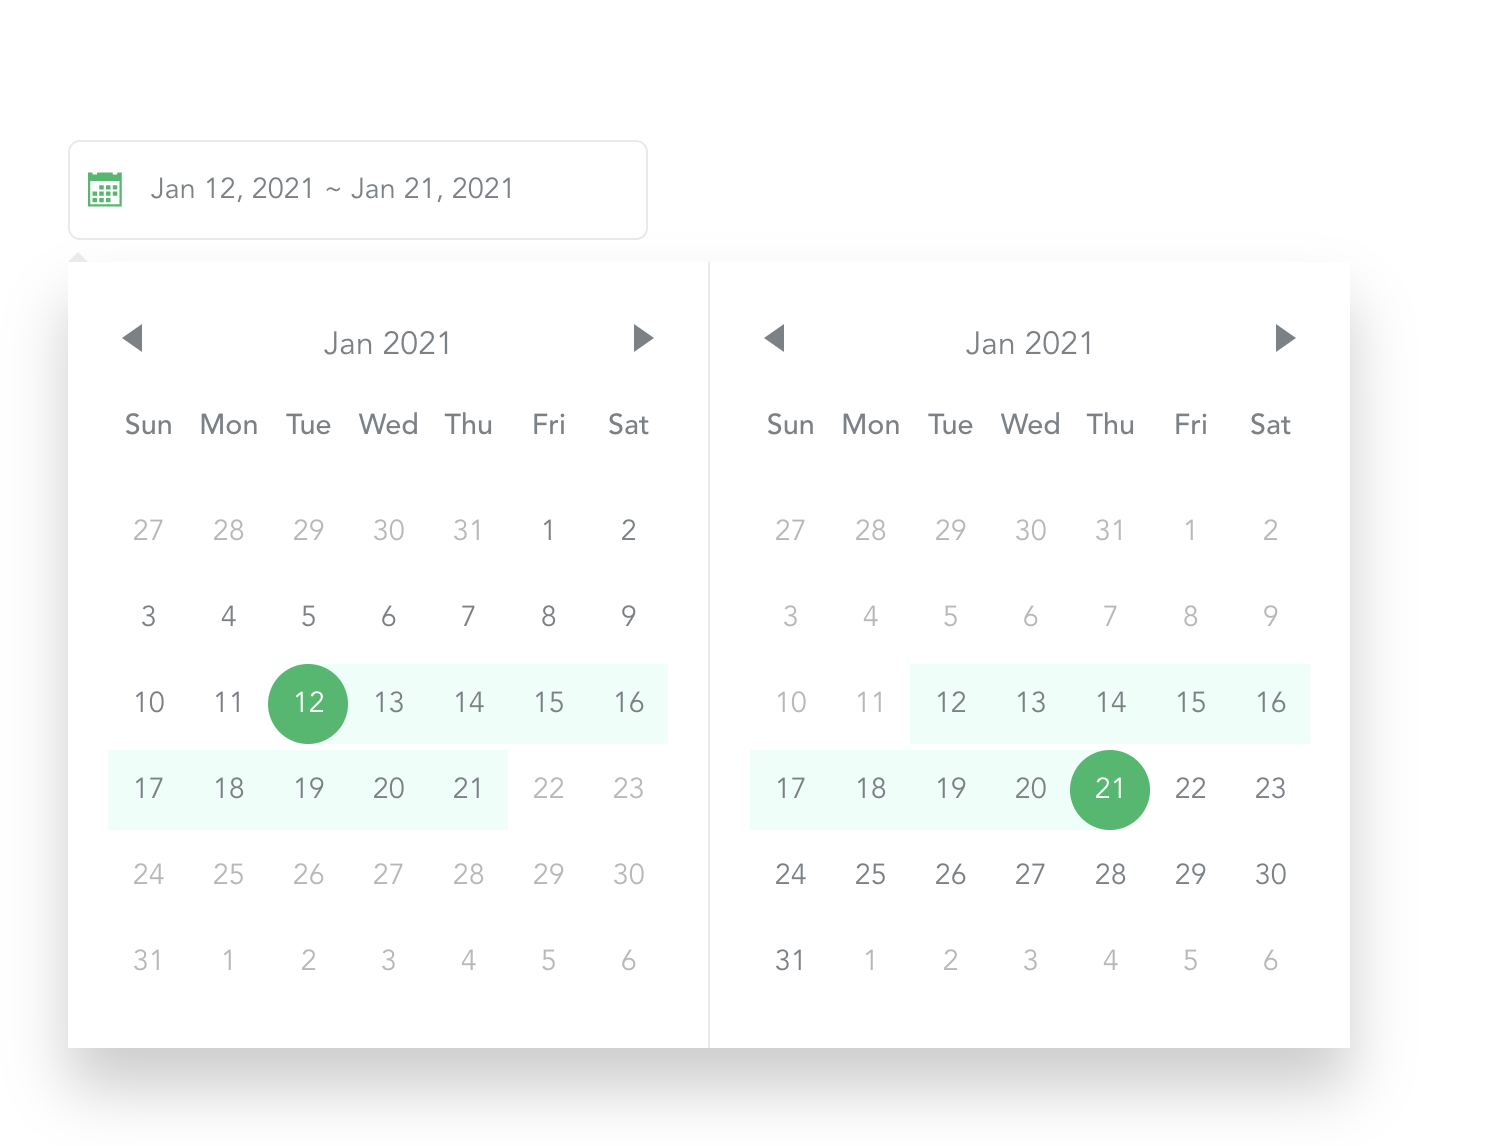 datepicker component